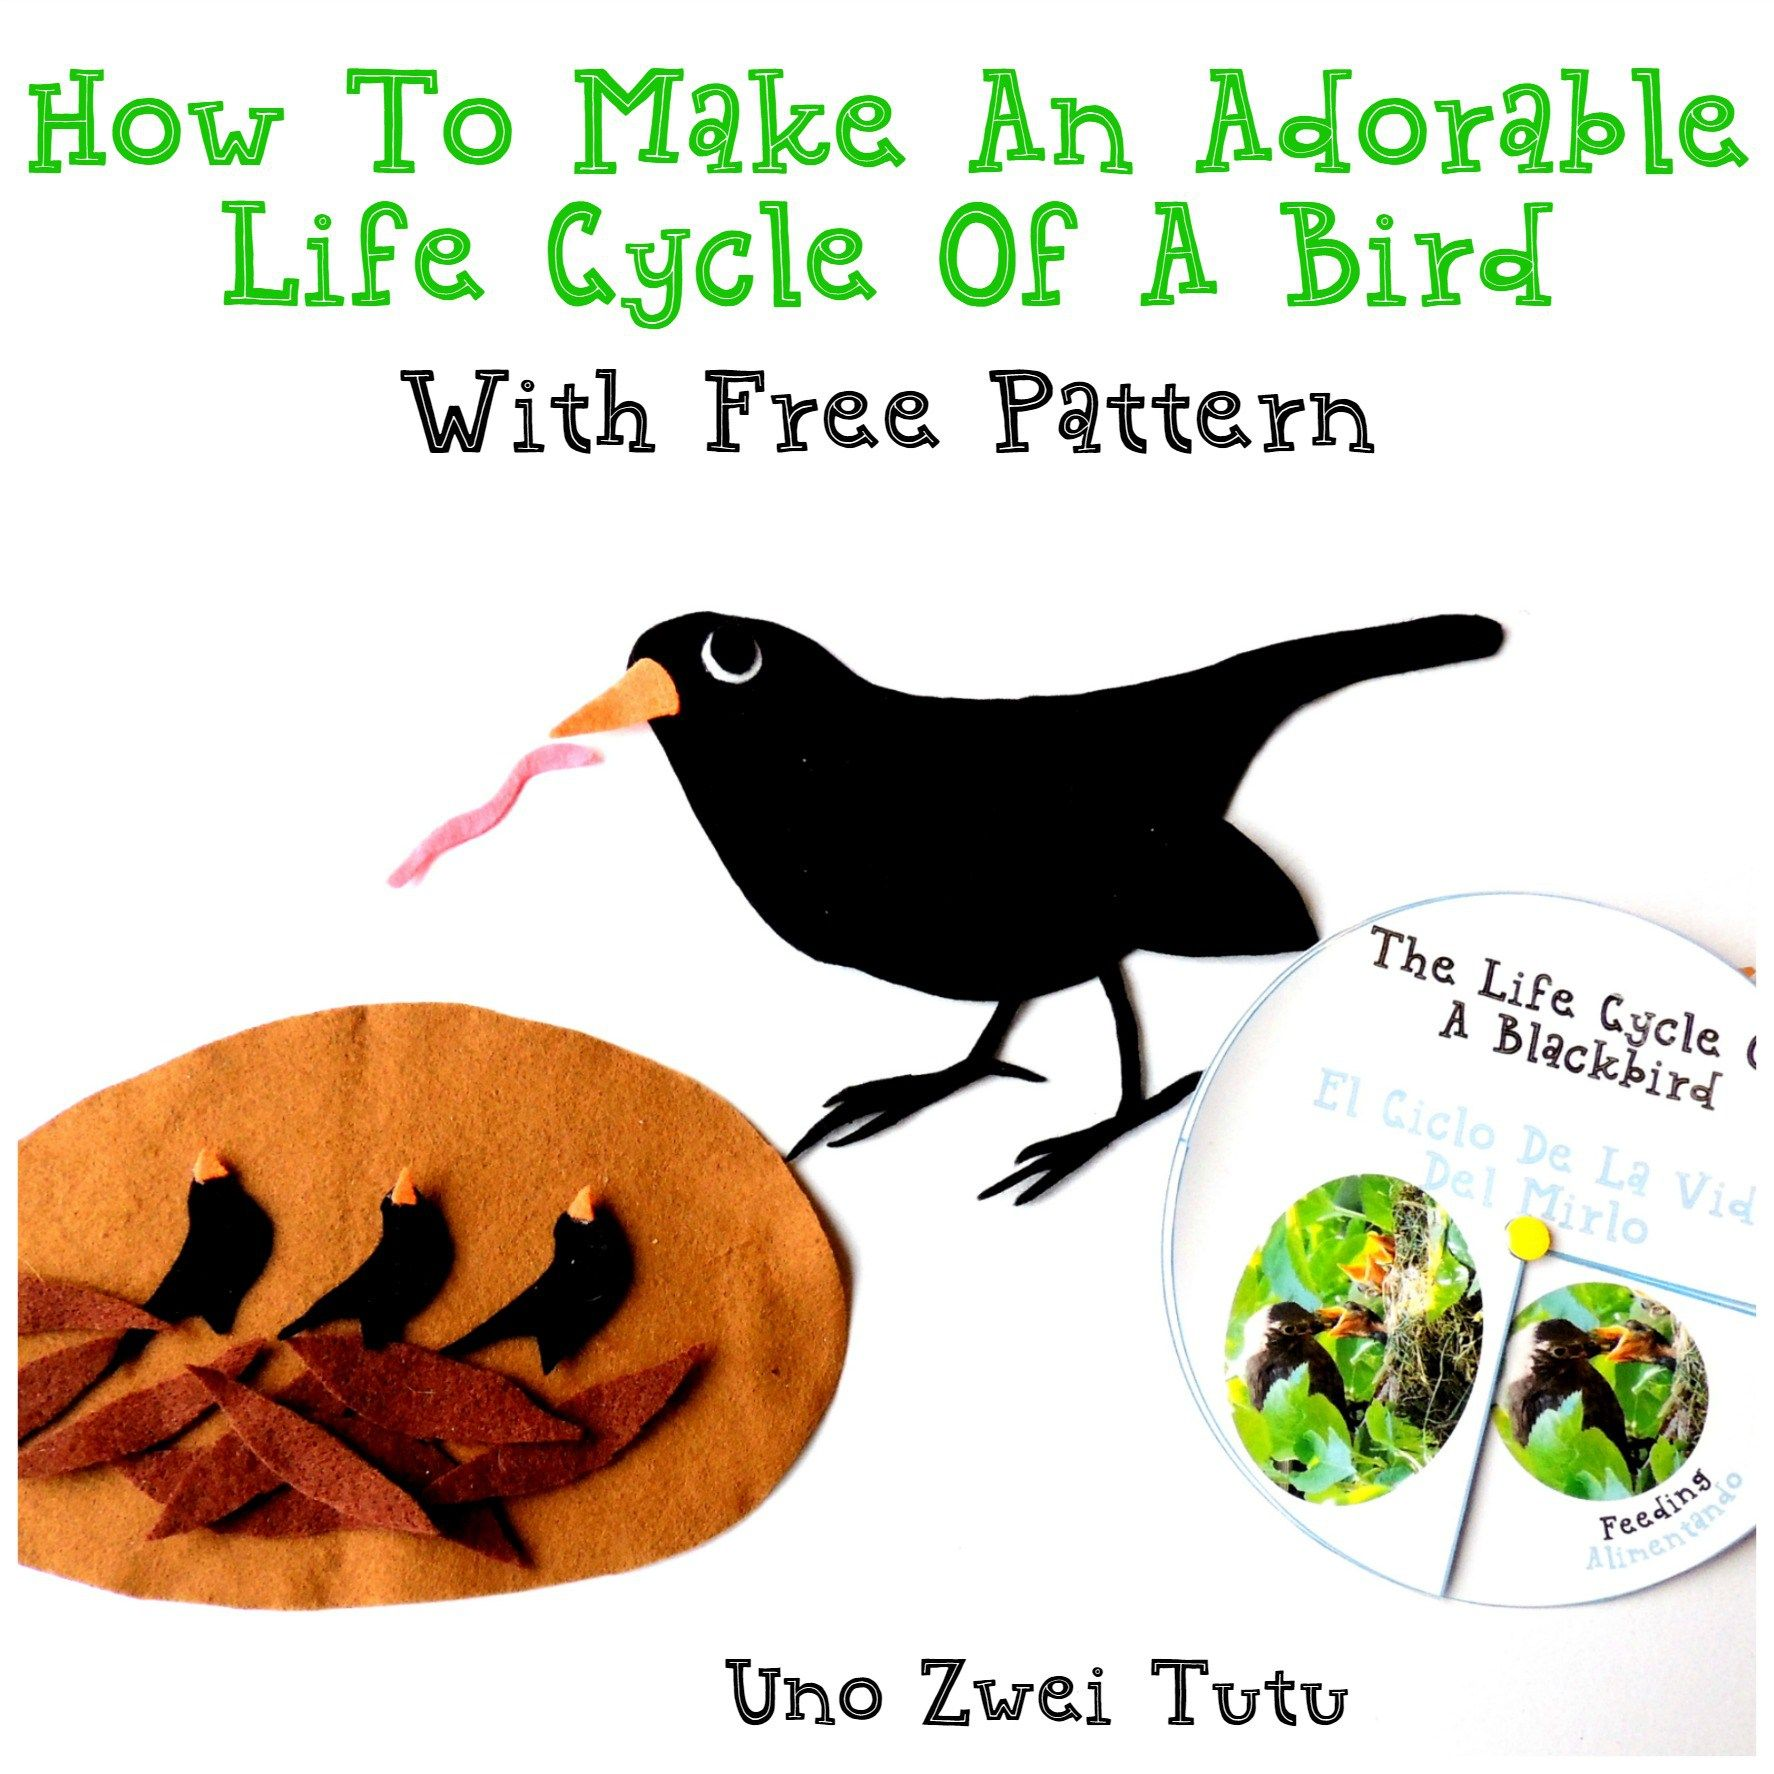 How To Make An Adorable Bird Life Cycle Using Only Felt